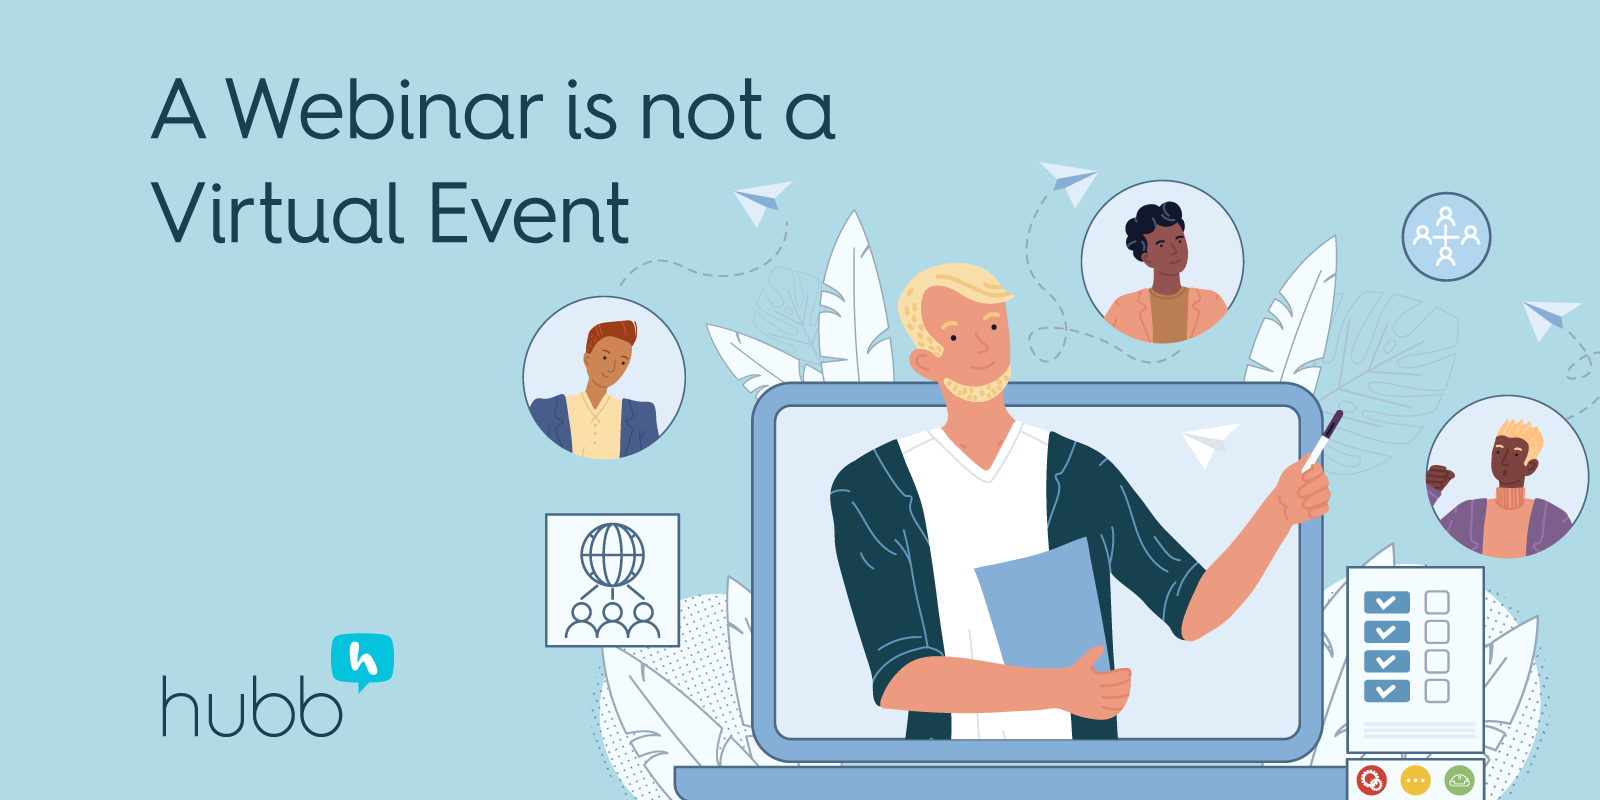 A Webinar is not a Virtual Event